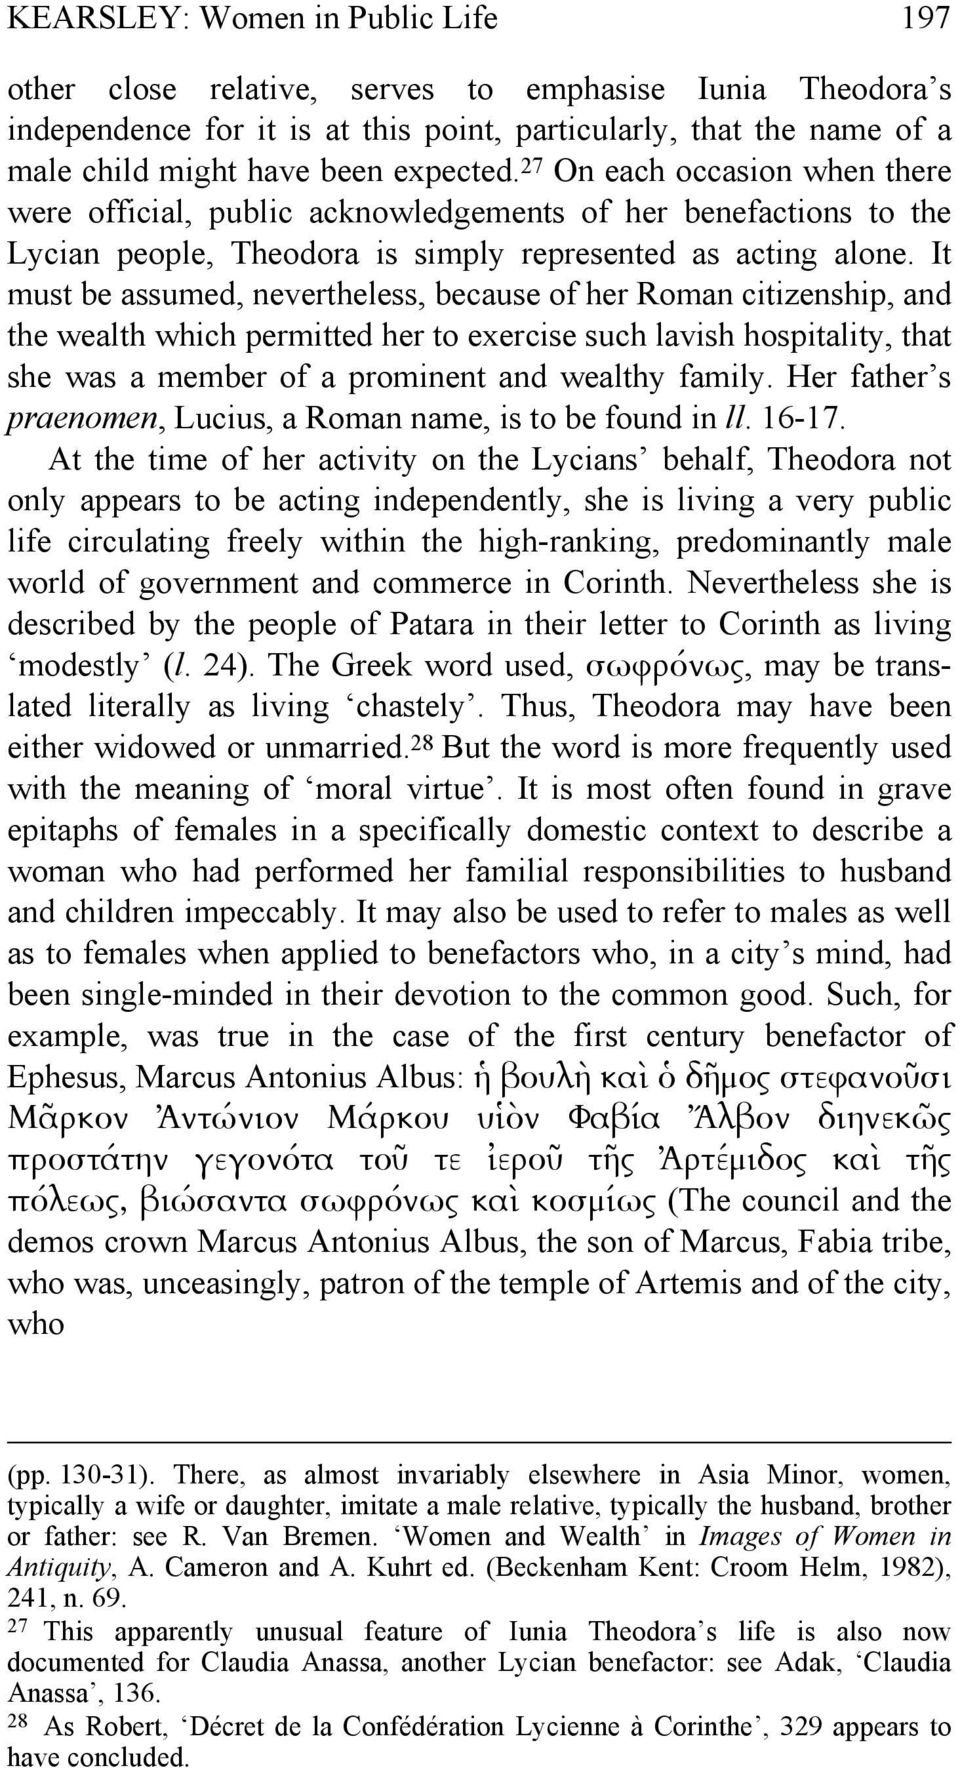 It must be assumed, nevertheless, because of her Roman citizenship, and the wealth which permitted her to exercise such lavish hospitality, that she was a member of a prominent and wealthy family.